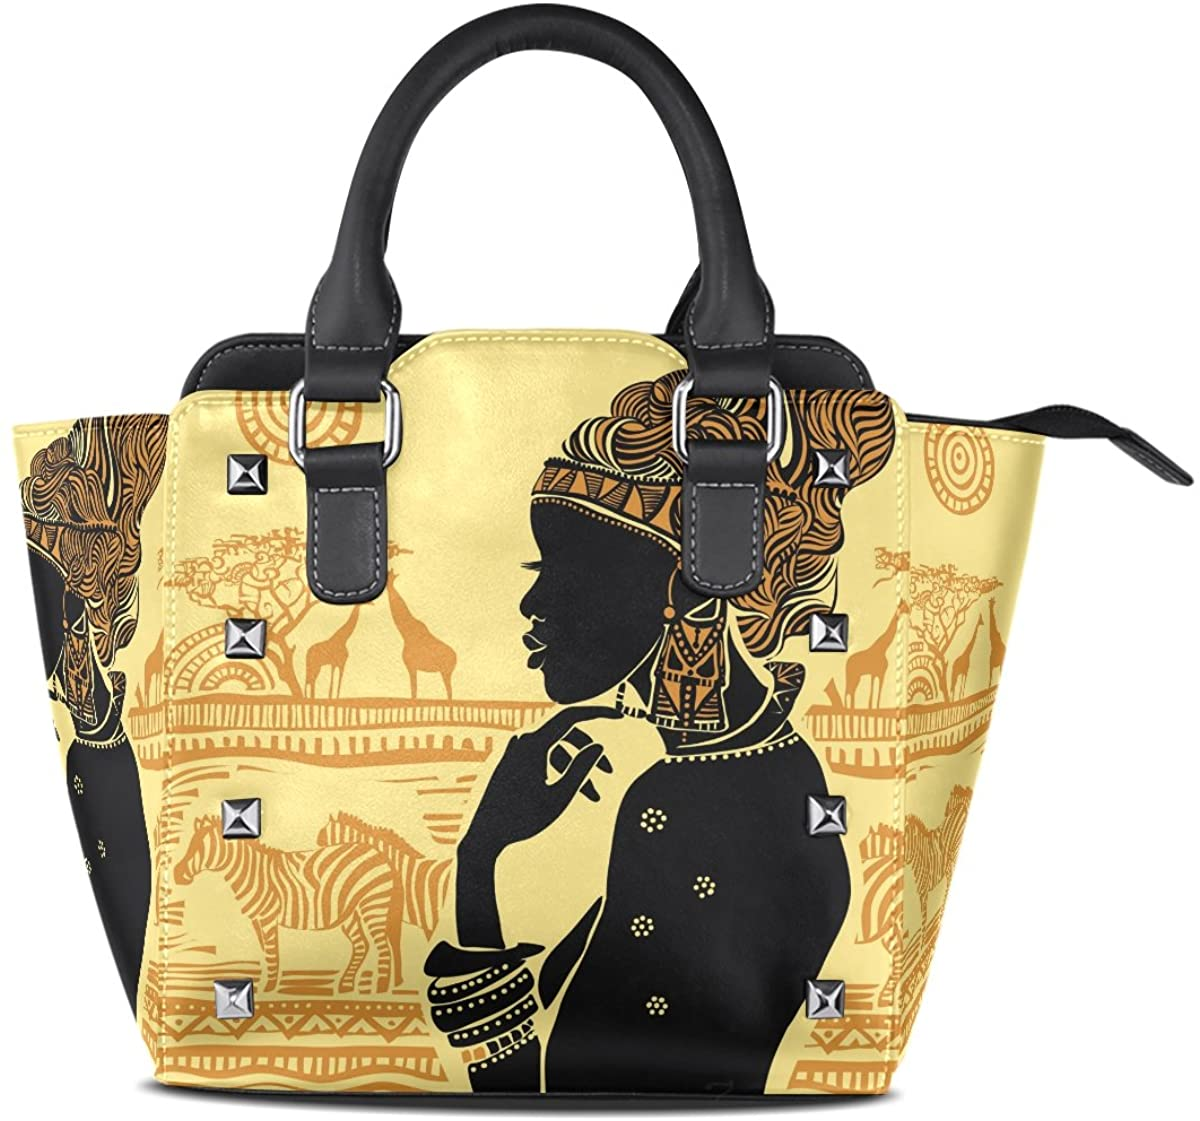 Use4 Tribal African Women Elephant Rivet PU Leather Tote Bag Shoulder Bag Purse